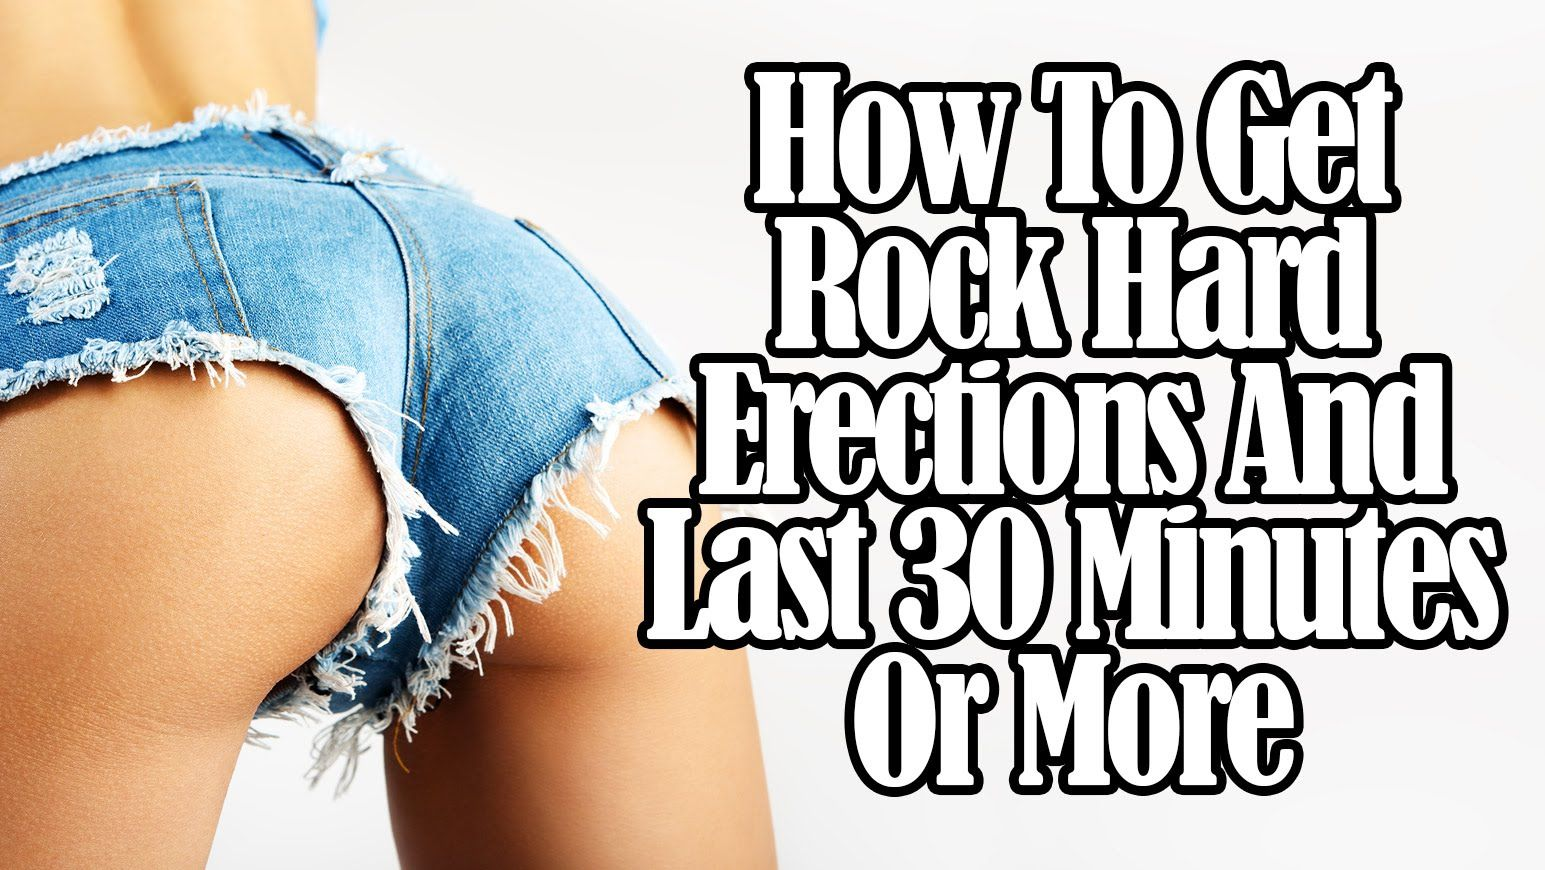 how-to-get-stiff-erection-naturally